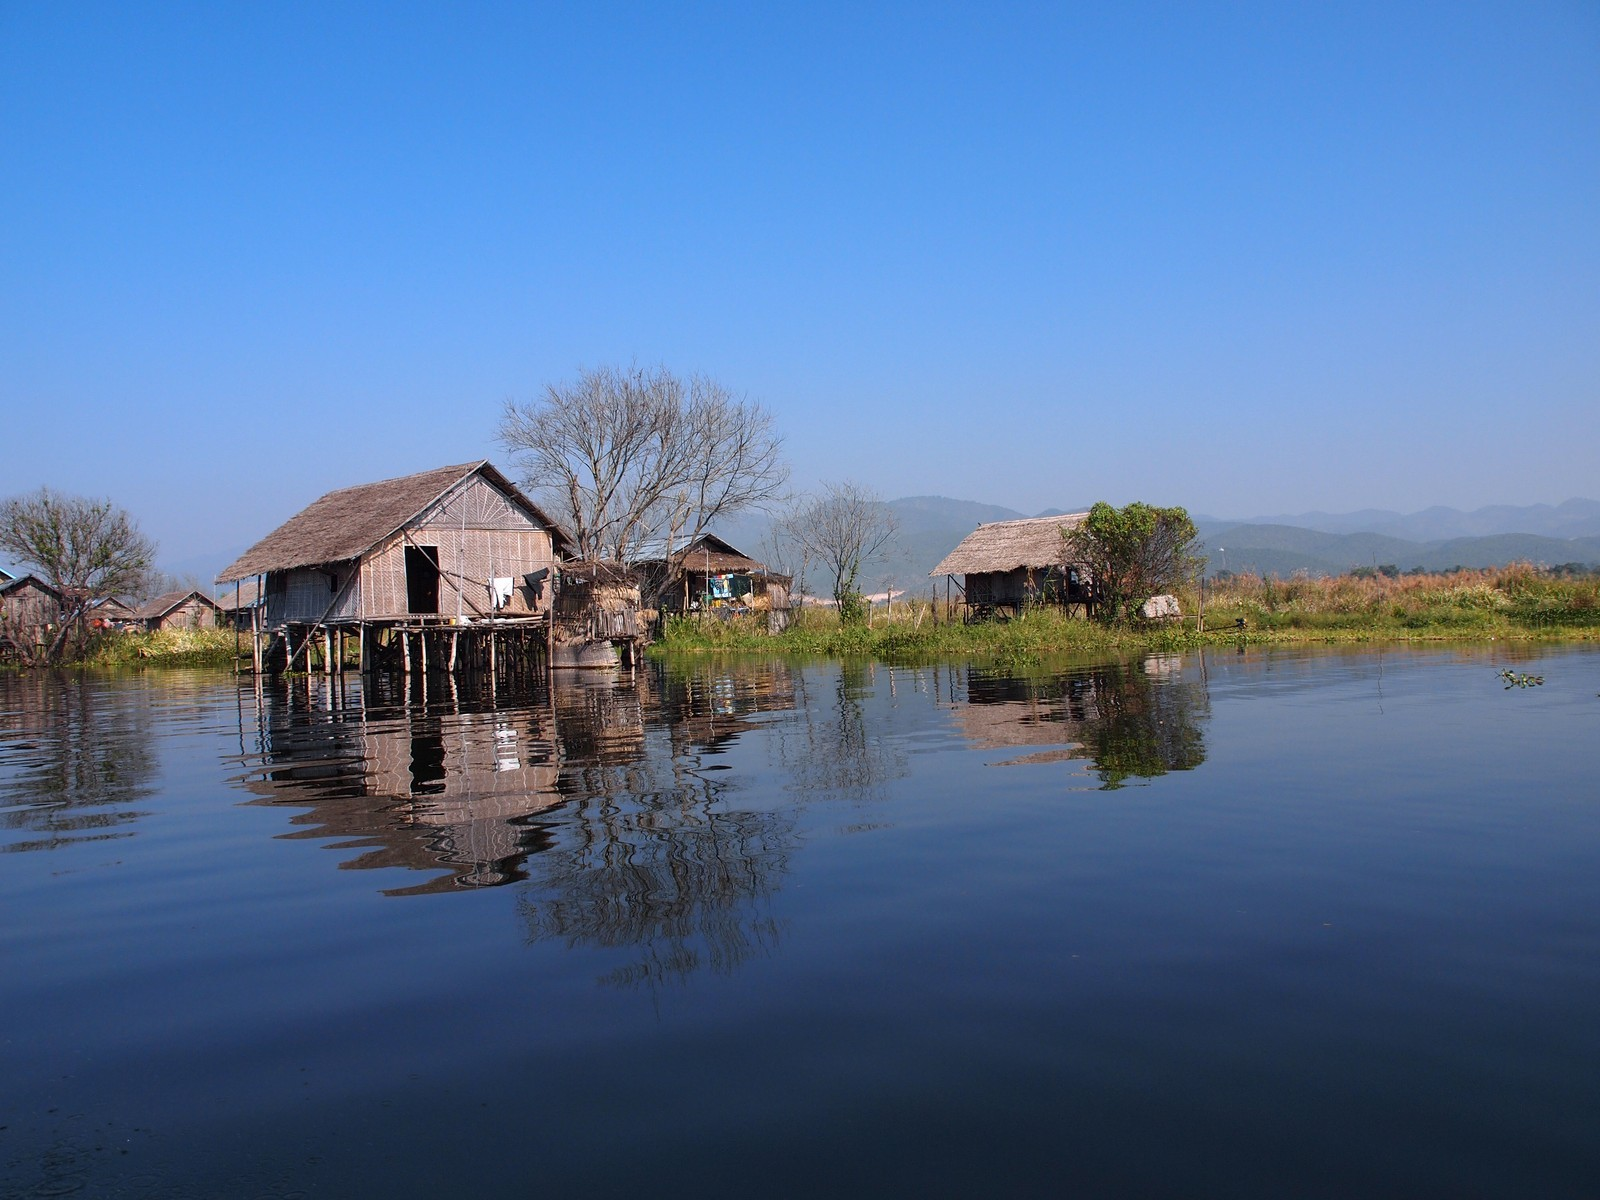 Stilted houses of Inle Lake, Myanmar